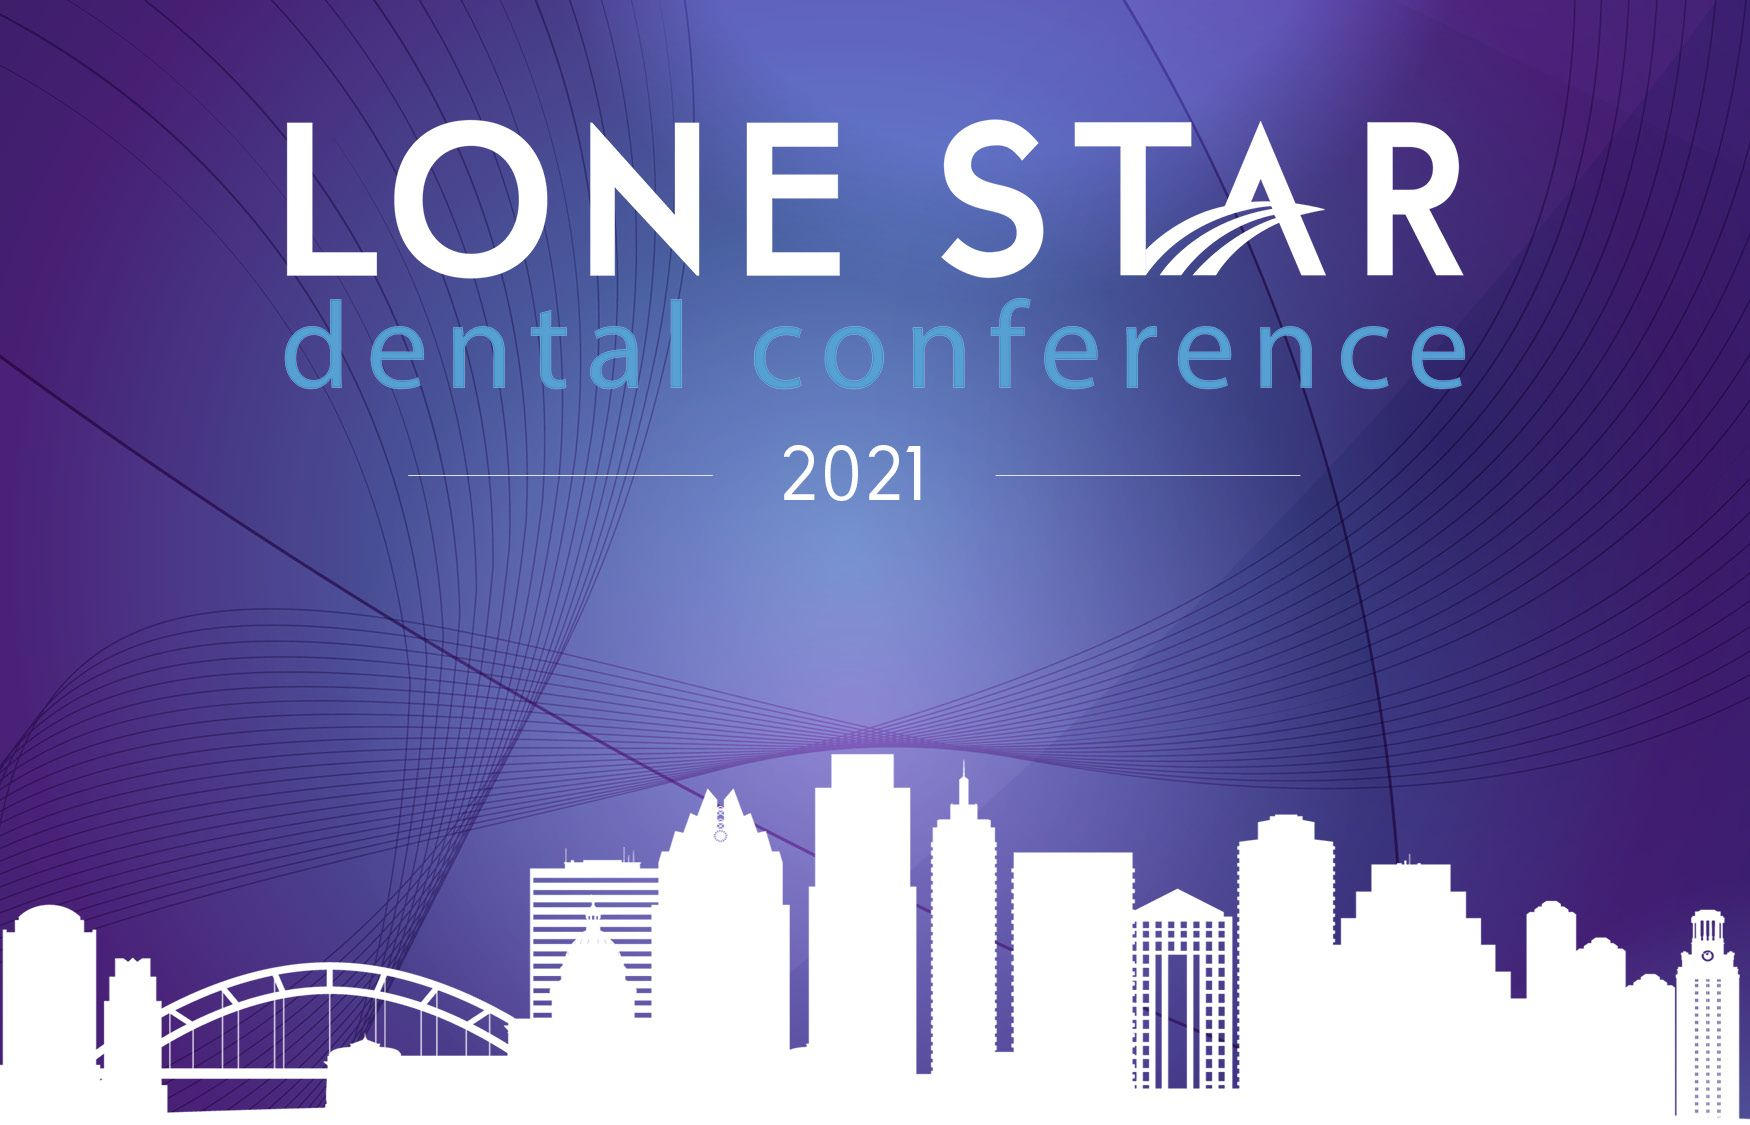 Lone Star Dental Conference